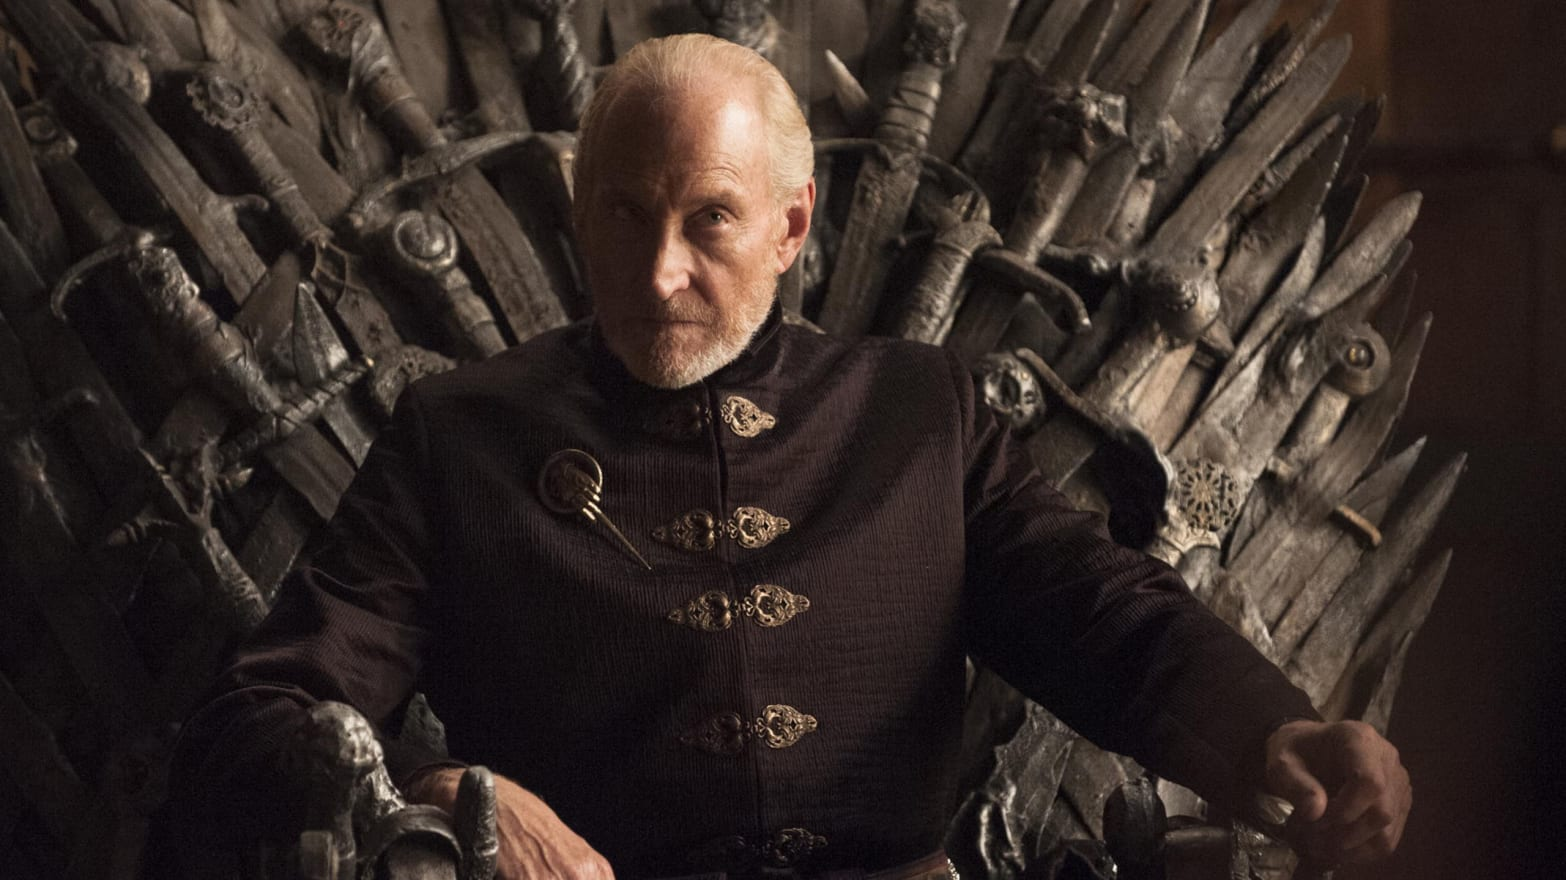 Tywin Lannister, the second worst father I've seen in fiction